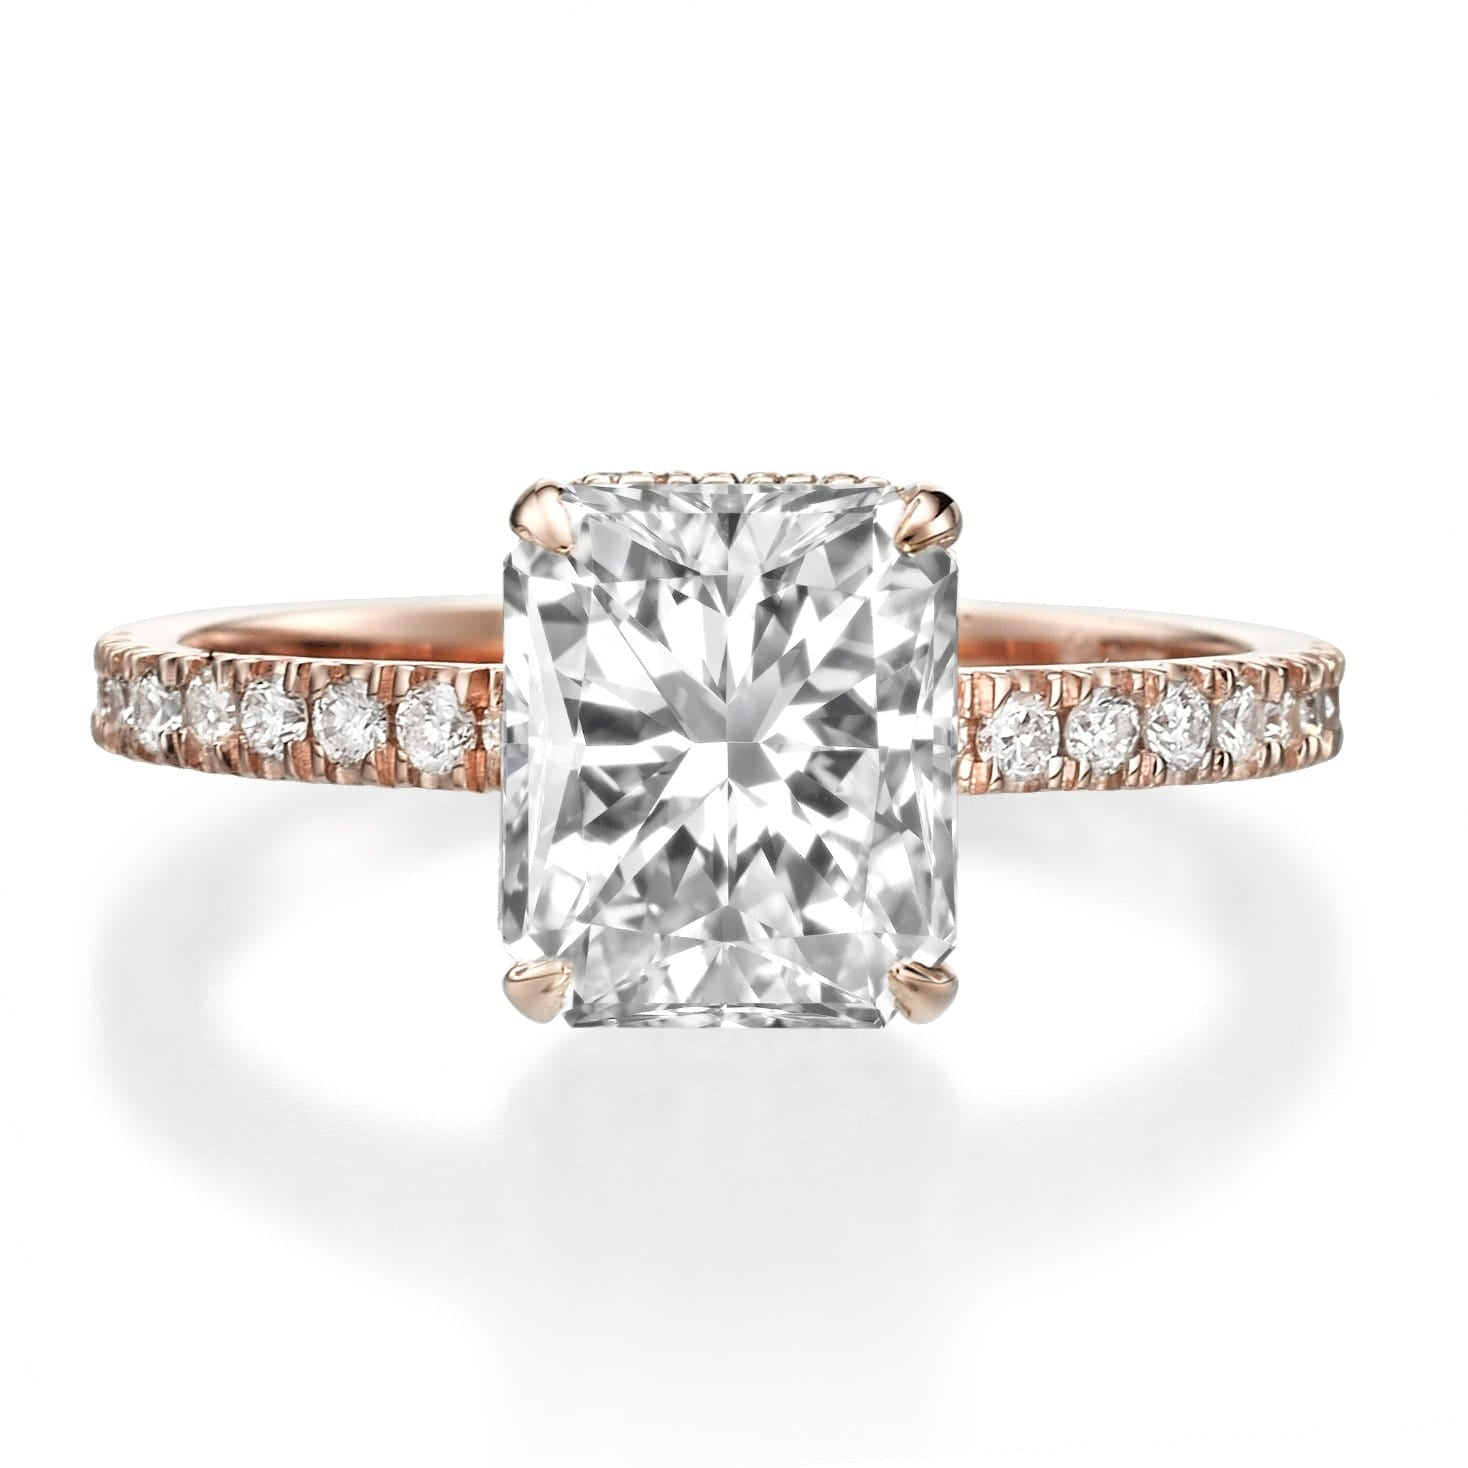 rings cushion elongated rectangular diamond jewelry off radiant blog vs engagement face